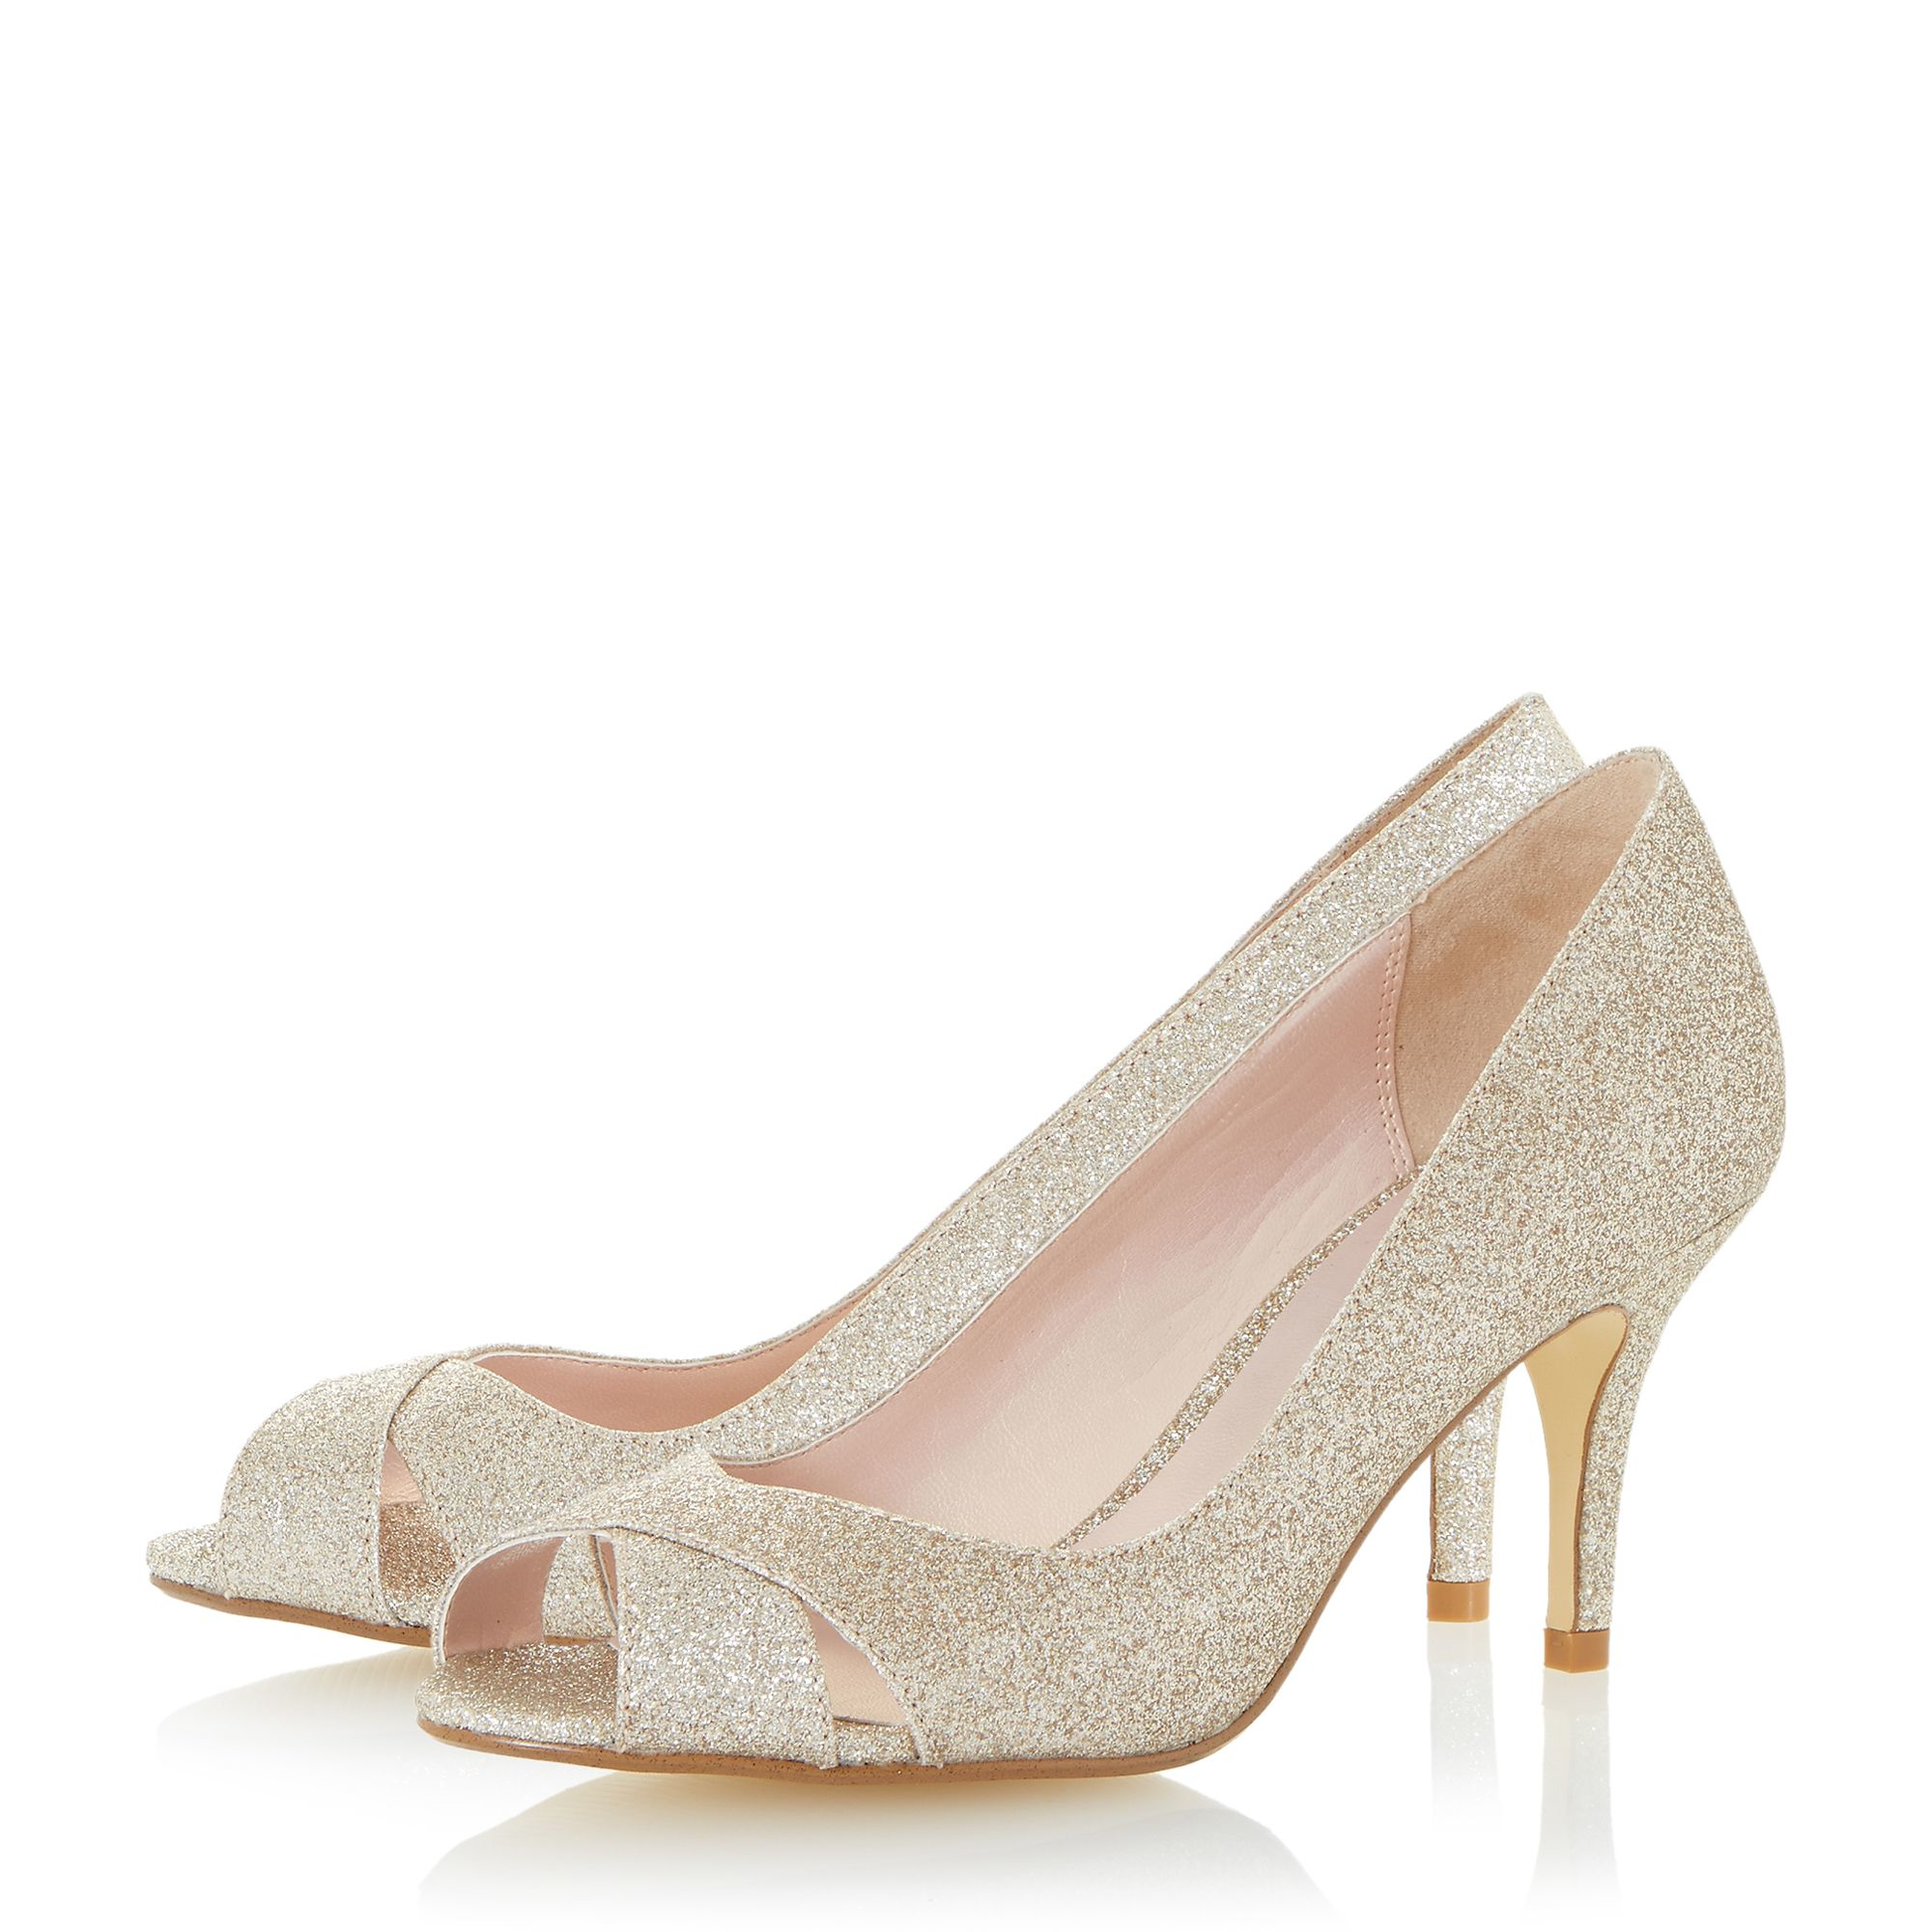 Womens Gold Peep Toe Shoes For Sale